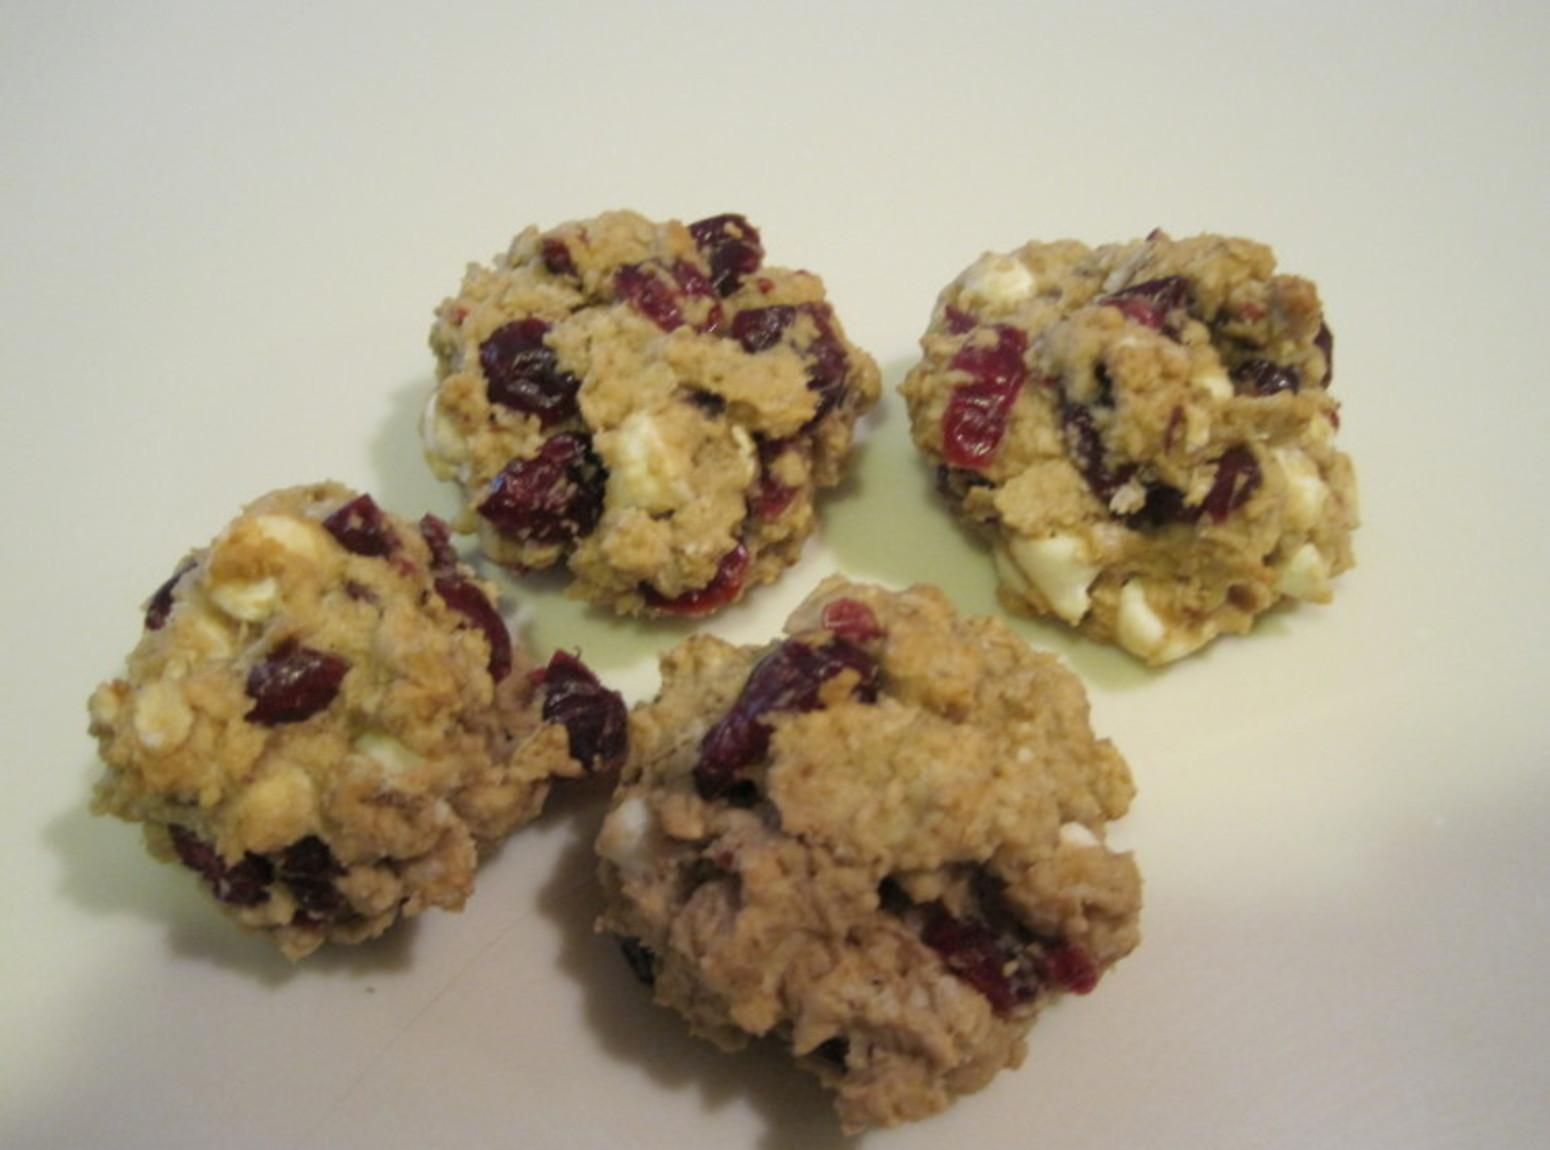 Rose's White Chocolate/Oatmeal and Cherry Craisin Cookies Recipe